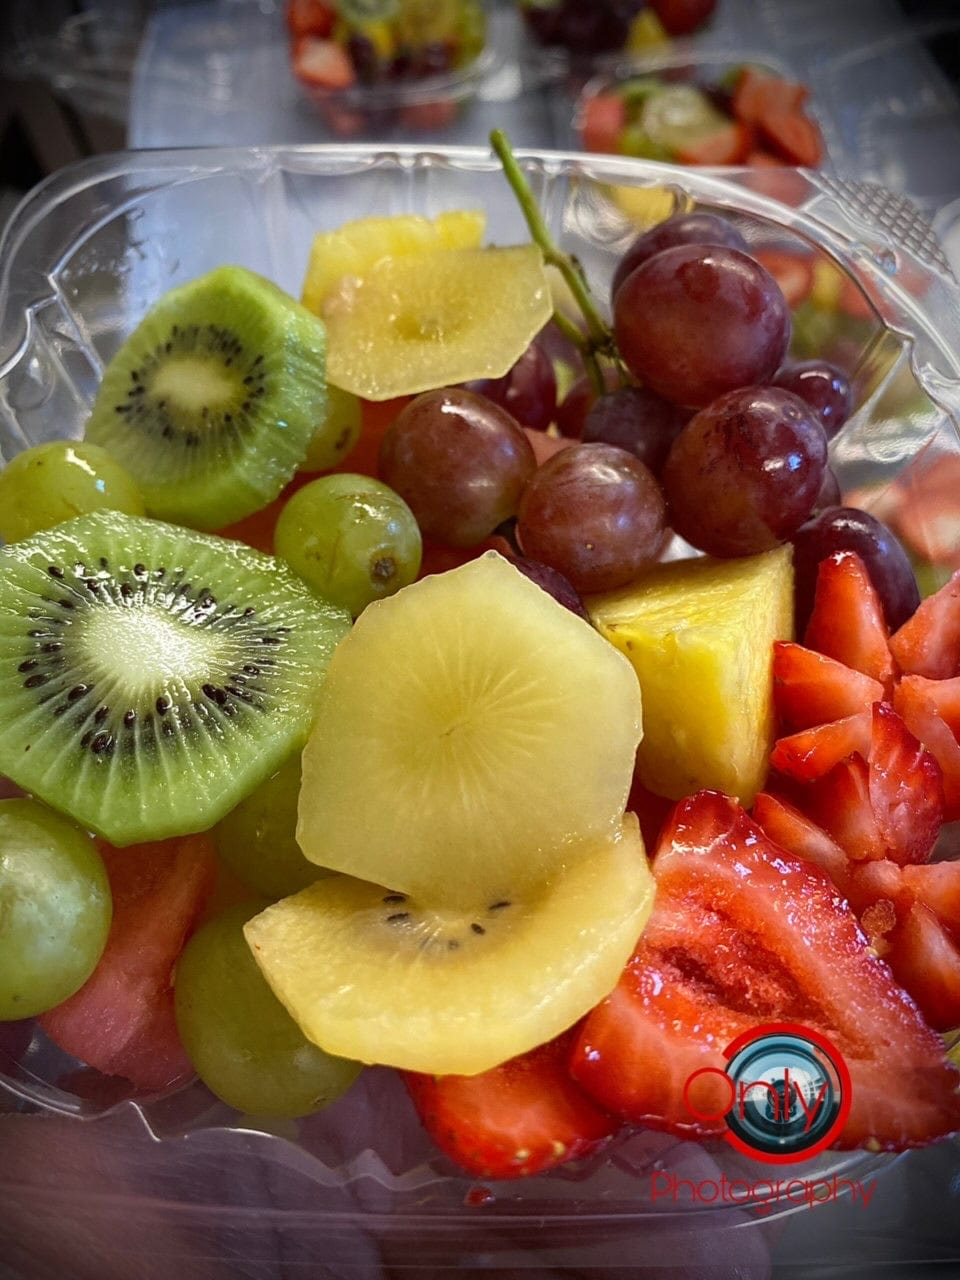 Snacks: Fruit Bowls